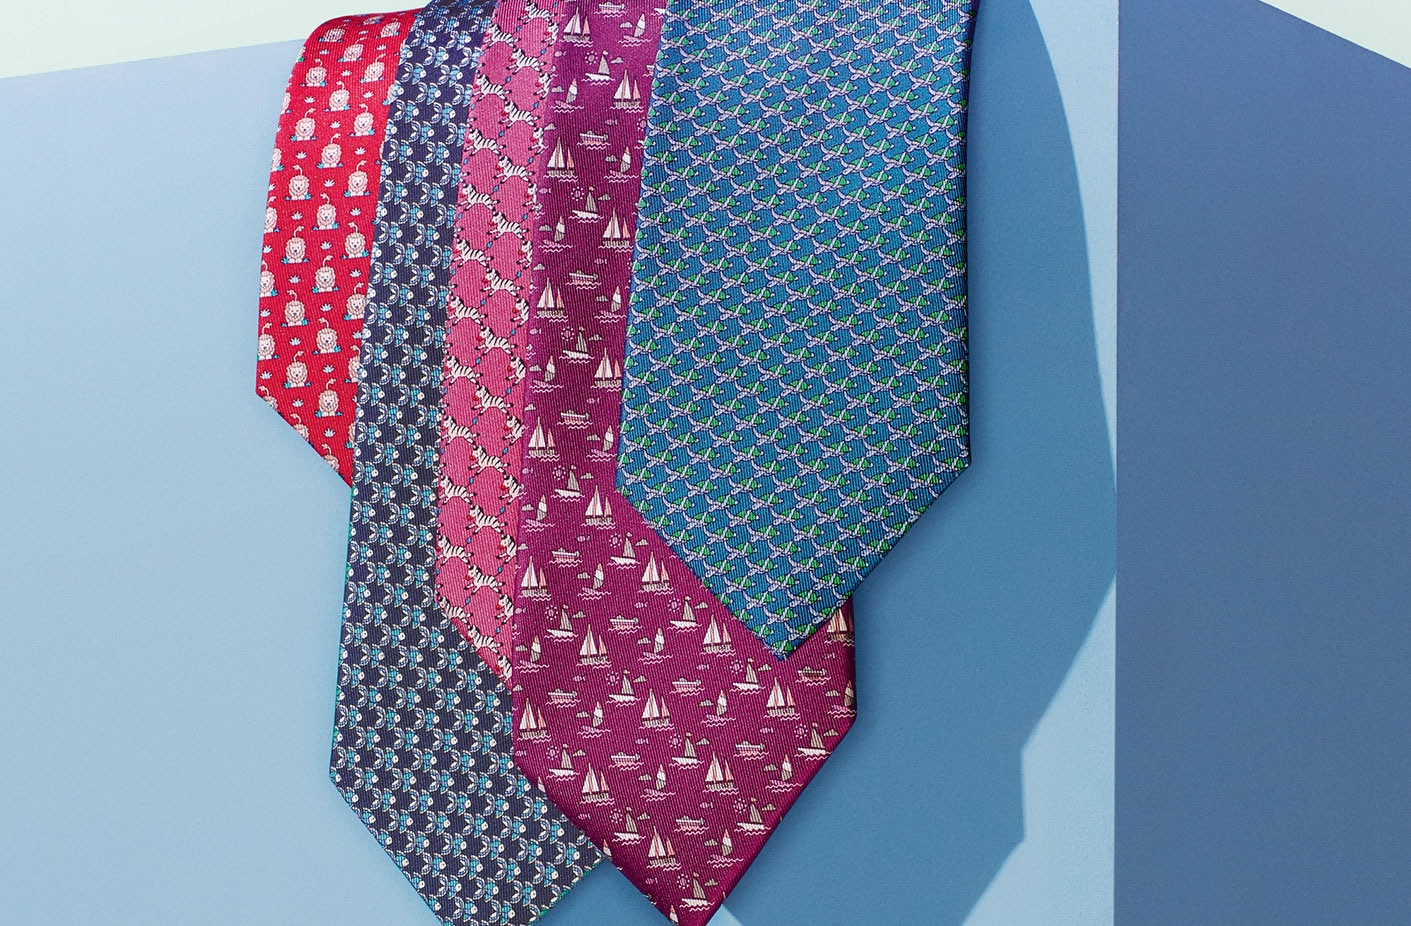 Ties and Accessories